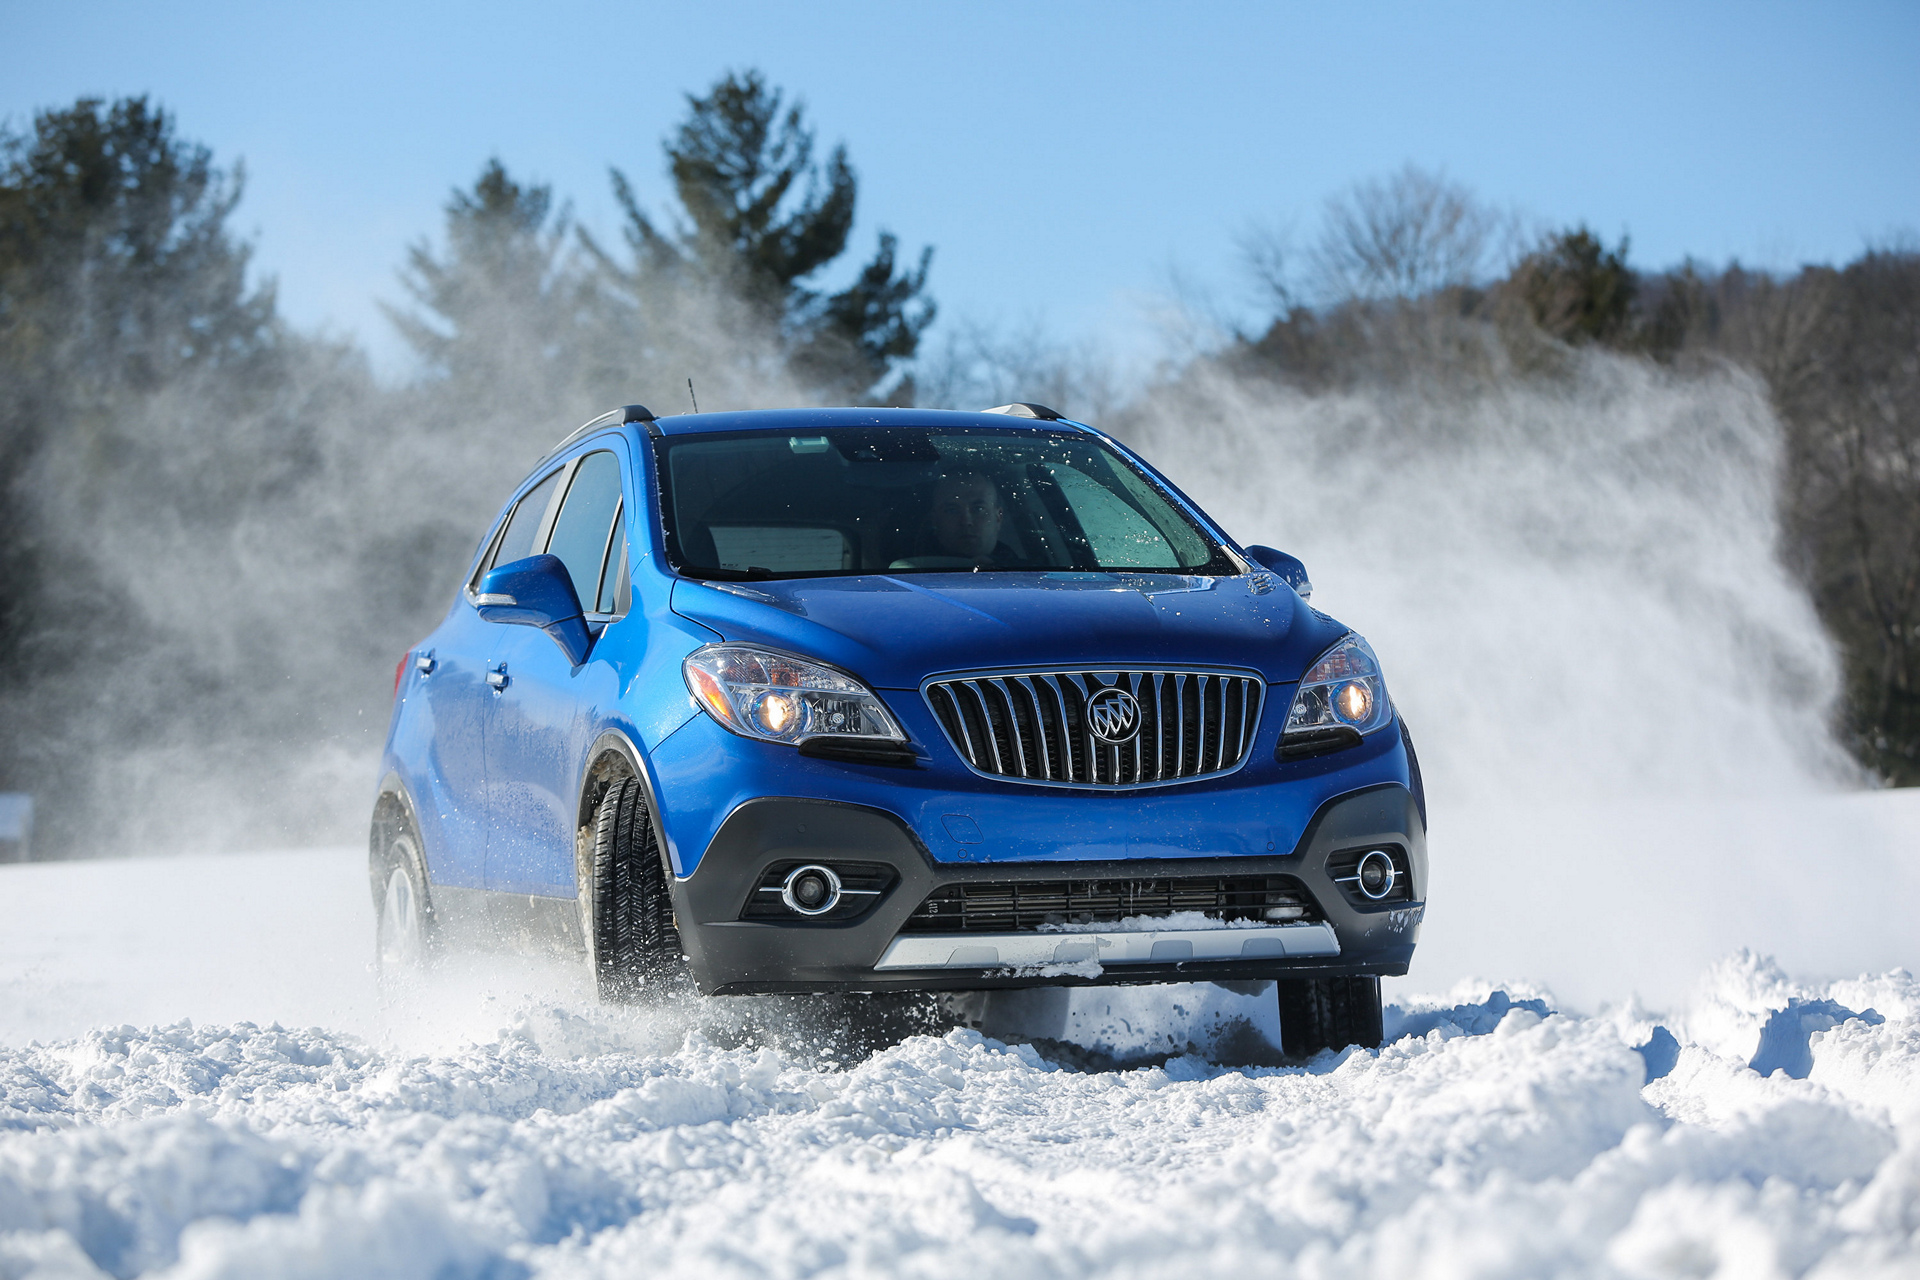 2016 Buick Encore © General Motors